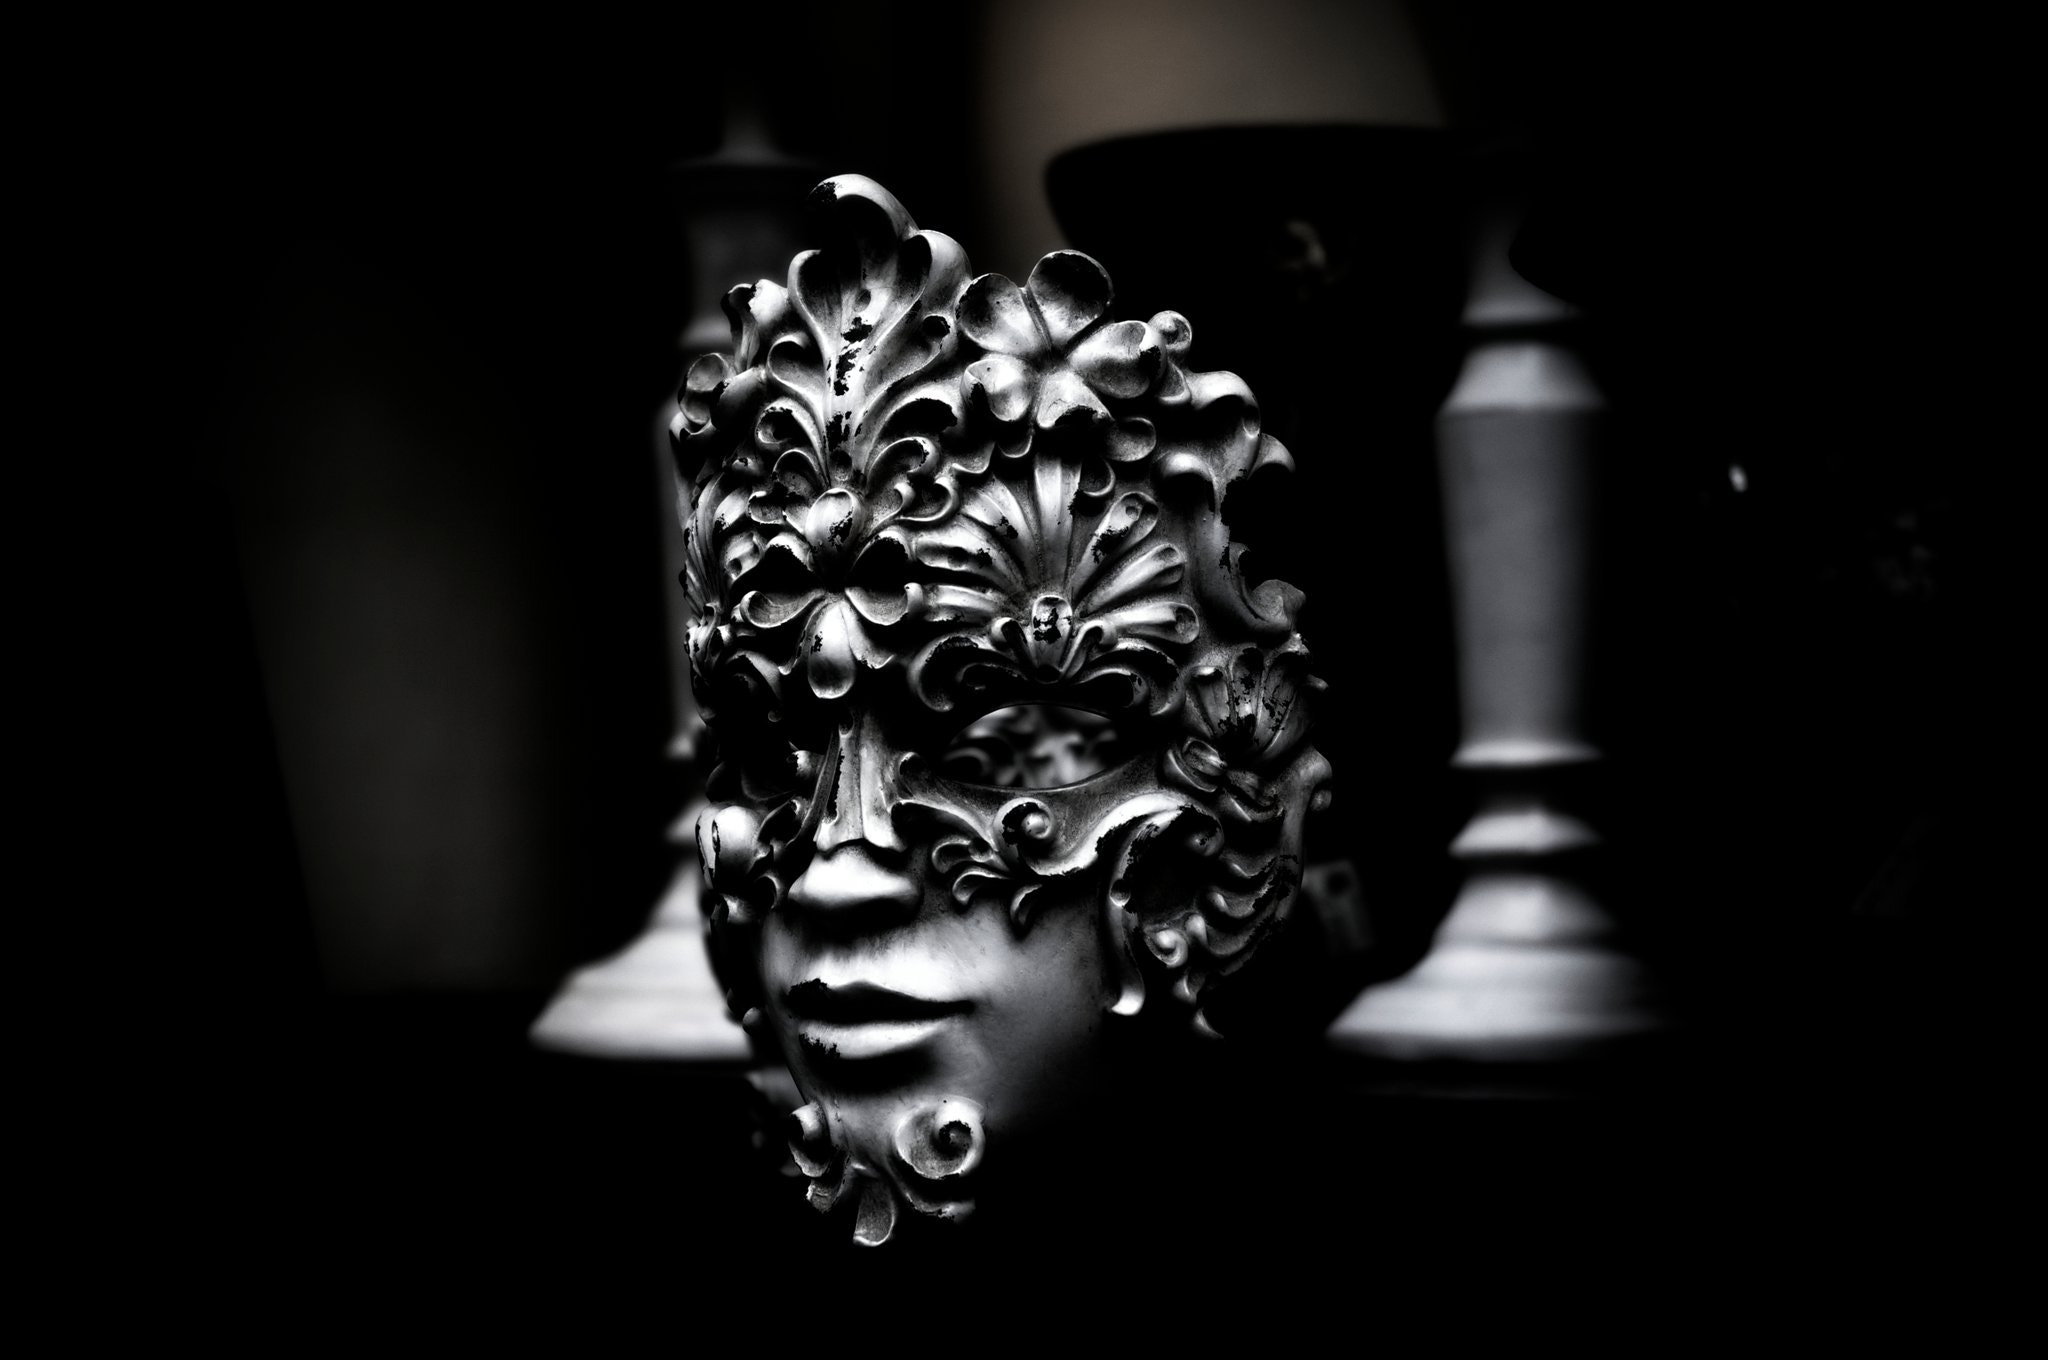 Photograph Mask on the shelf by Proton Pseudos on 500px